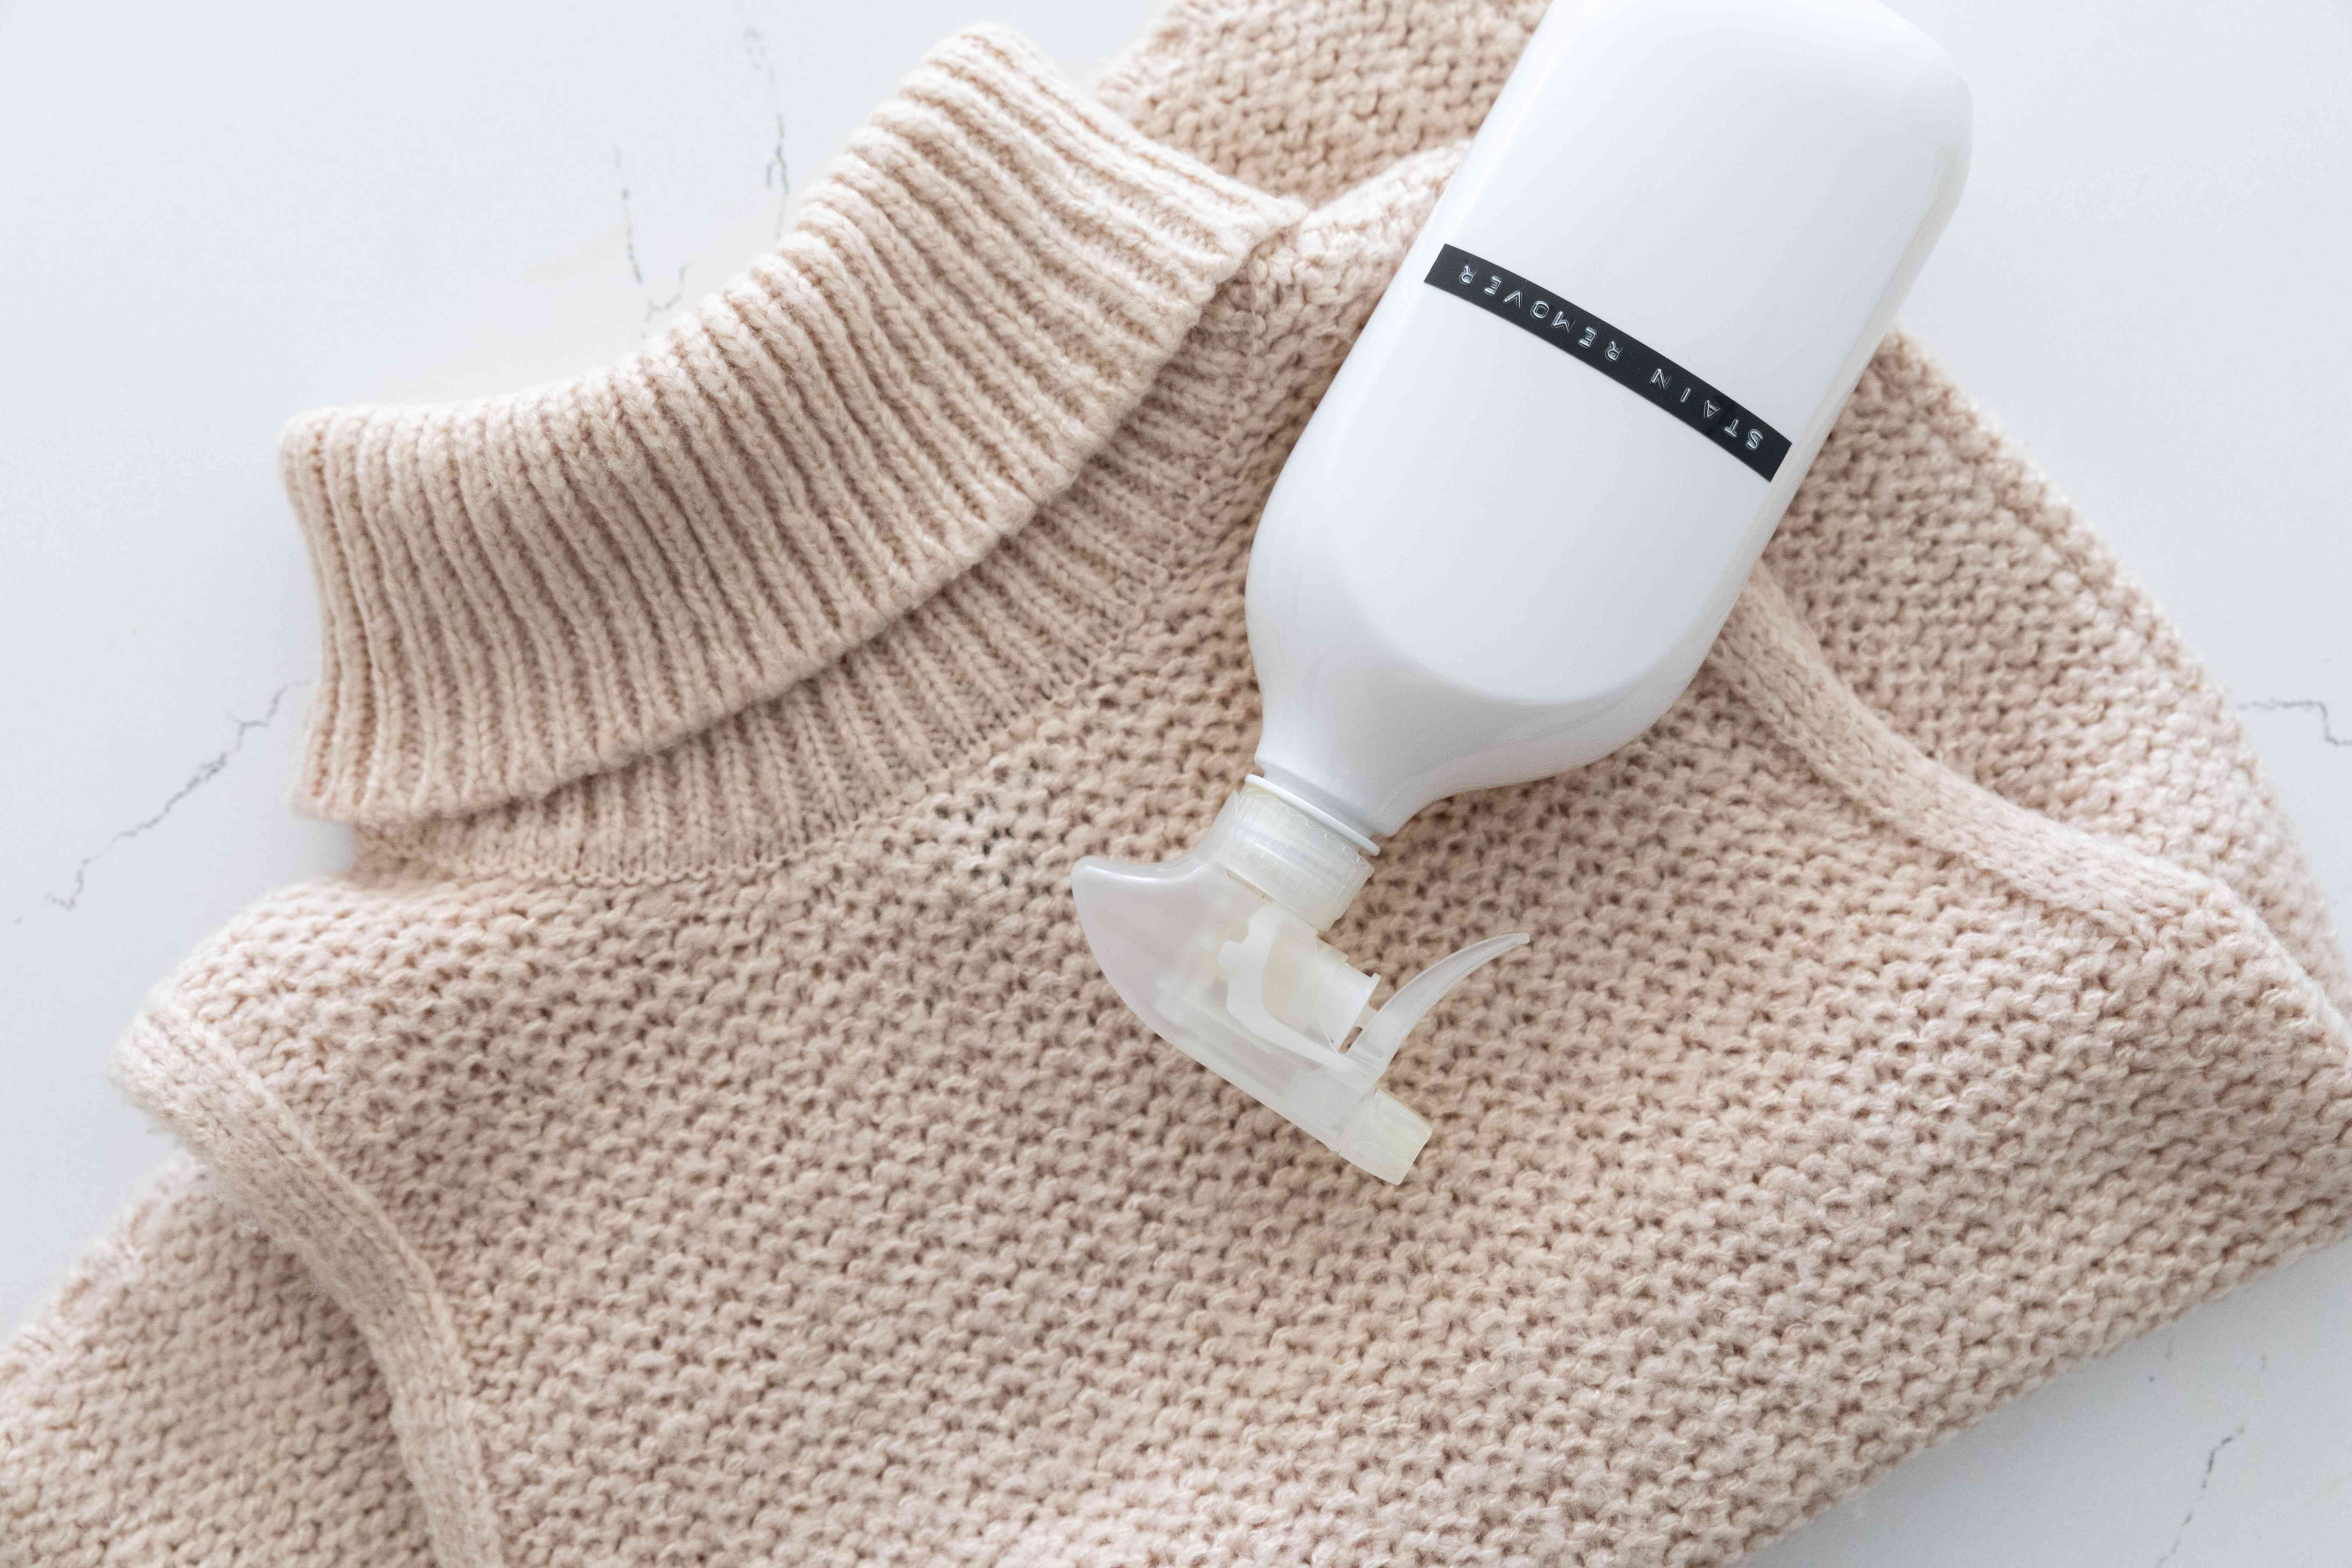 Acrylic knitted sweater spot treated with stain removal spray bottle on top